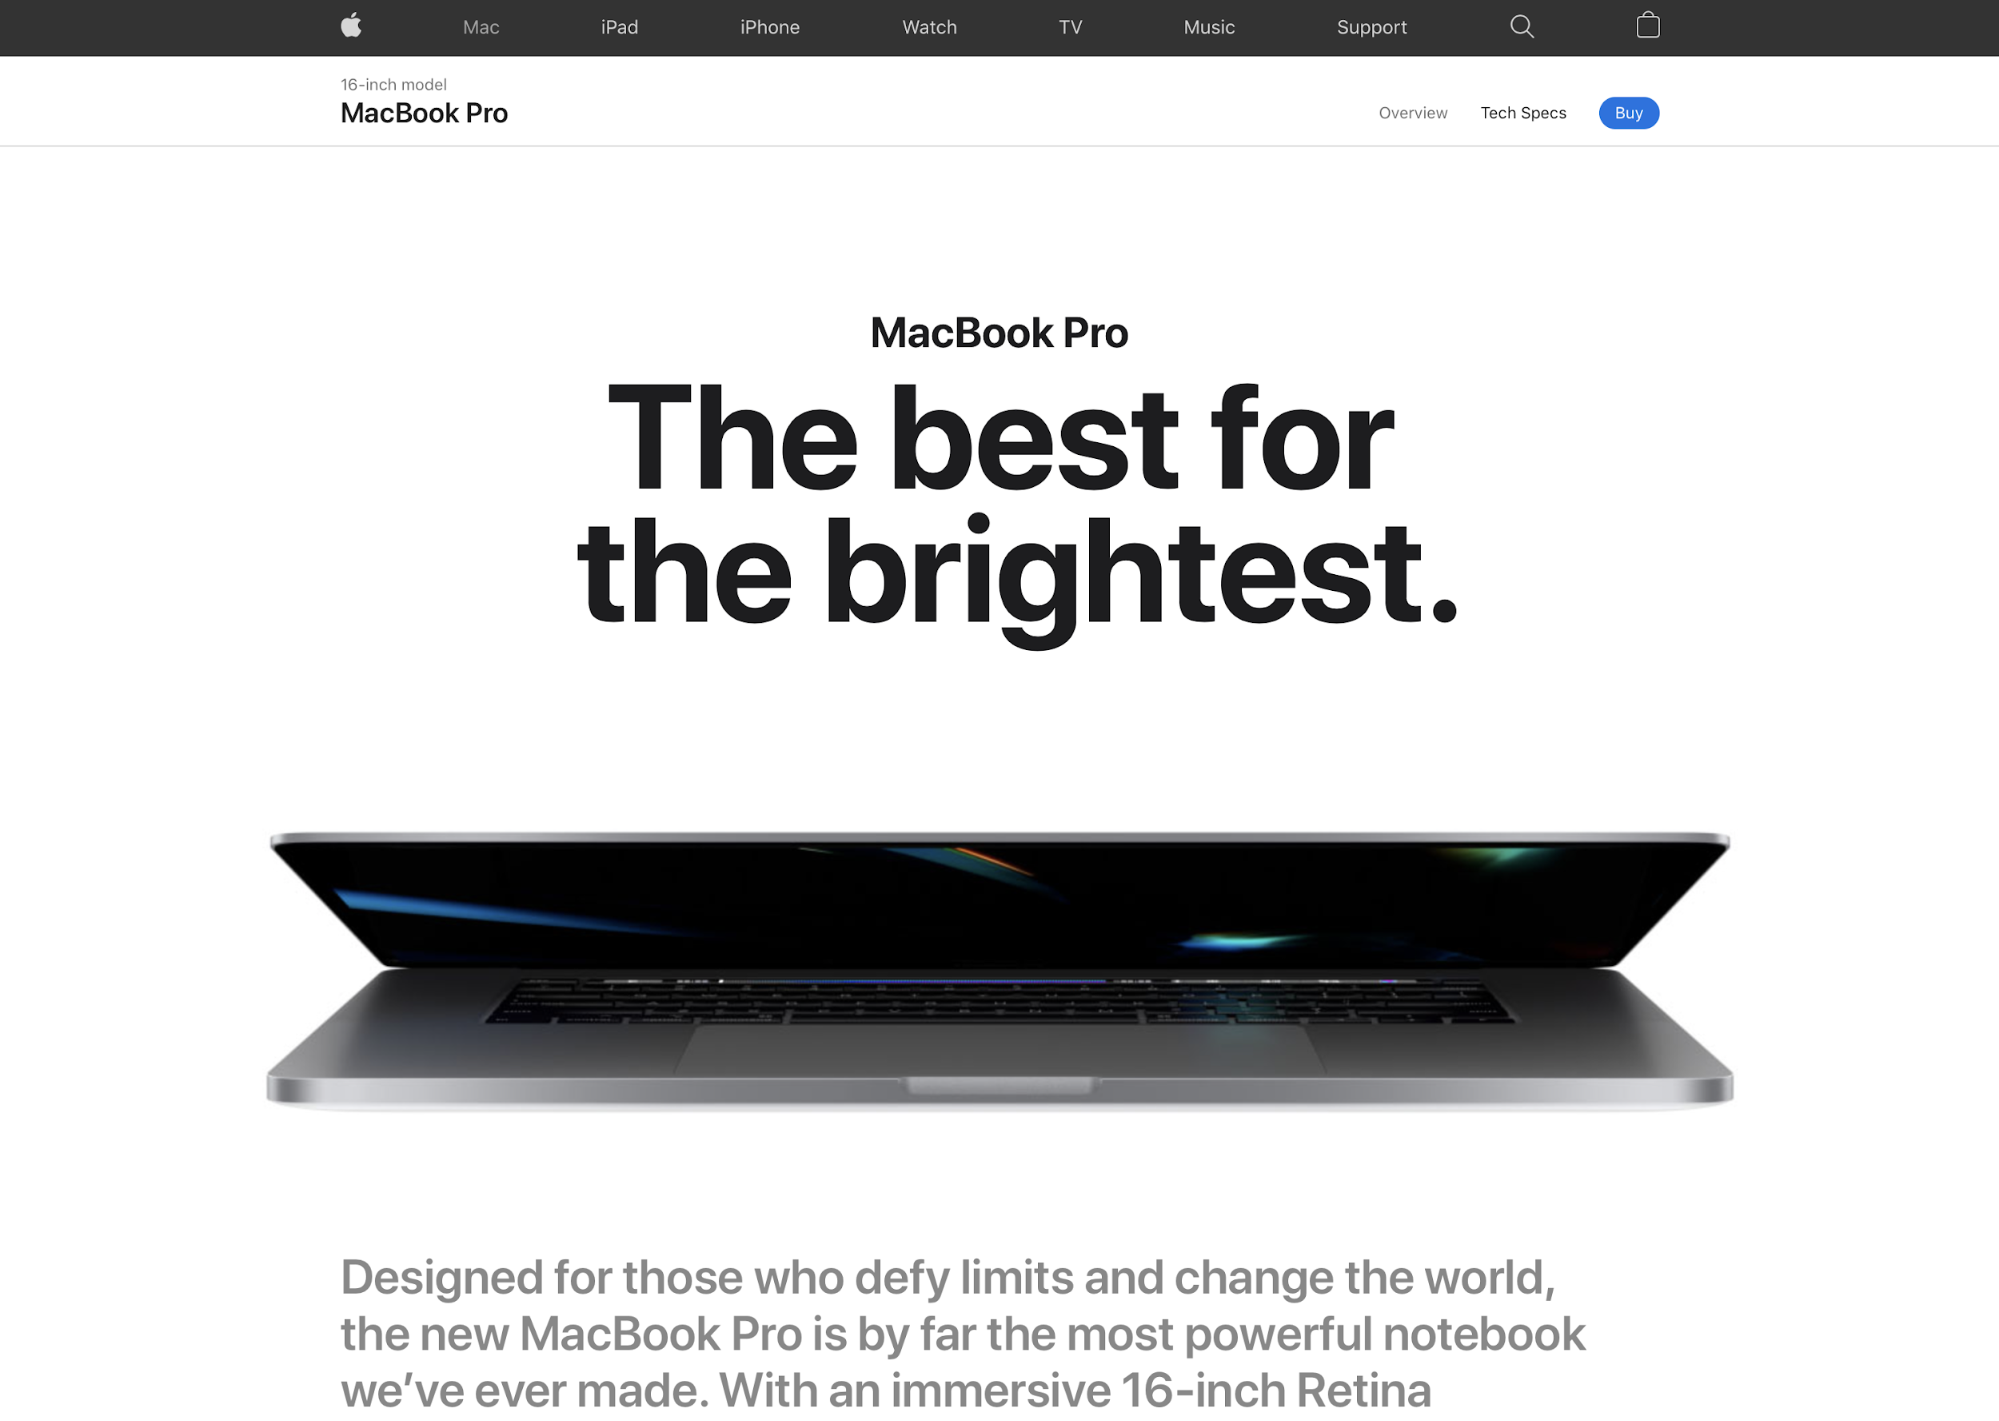 Usage of bold fonts by Apple